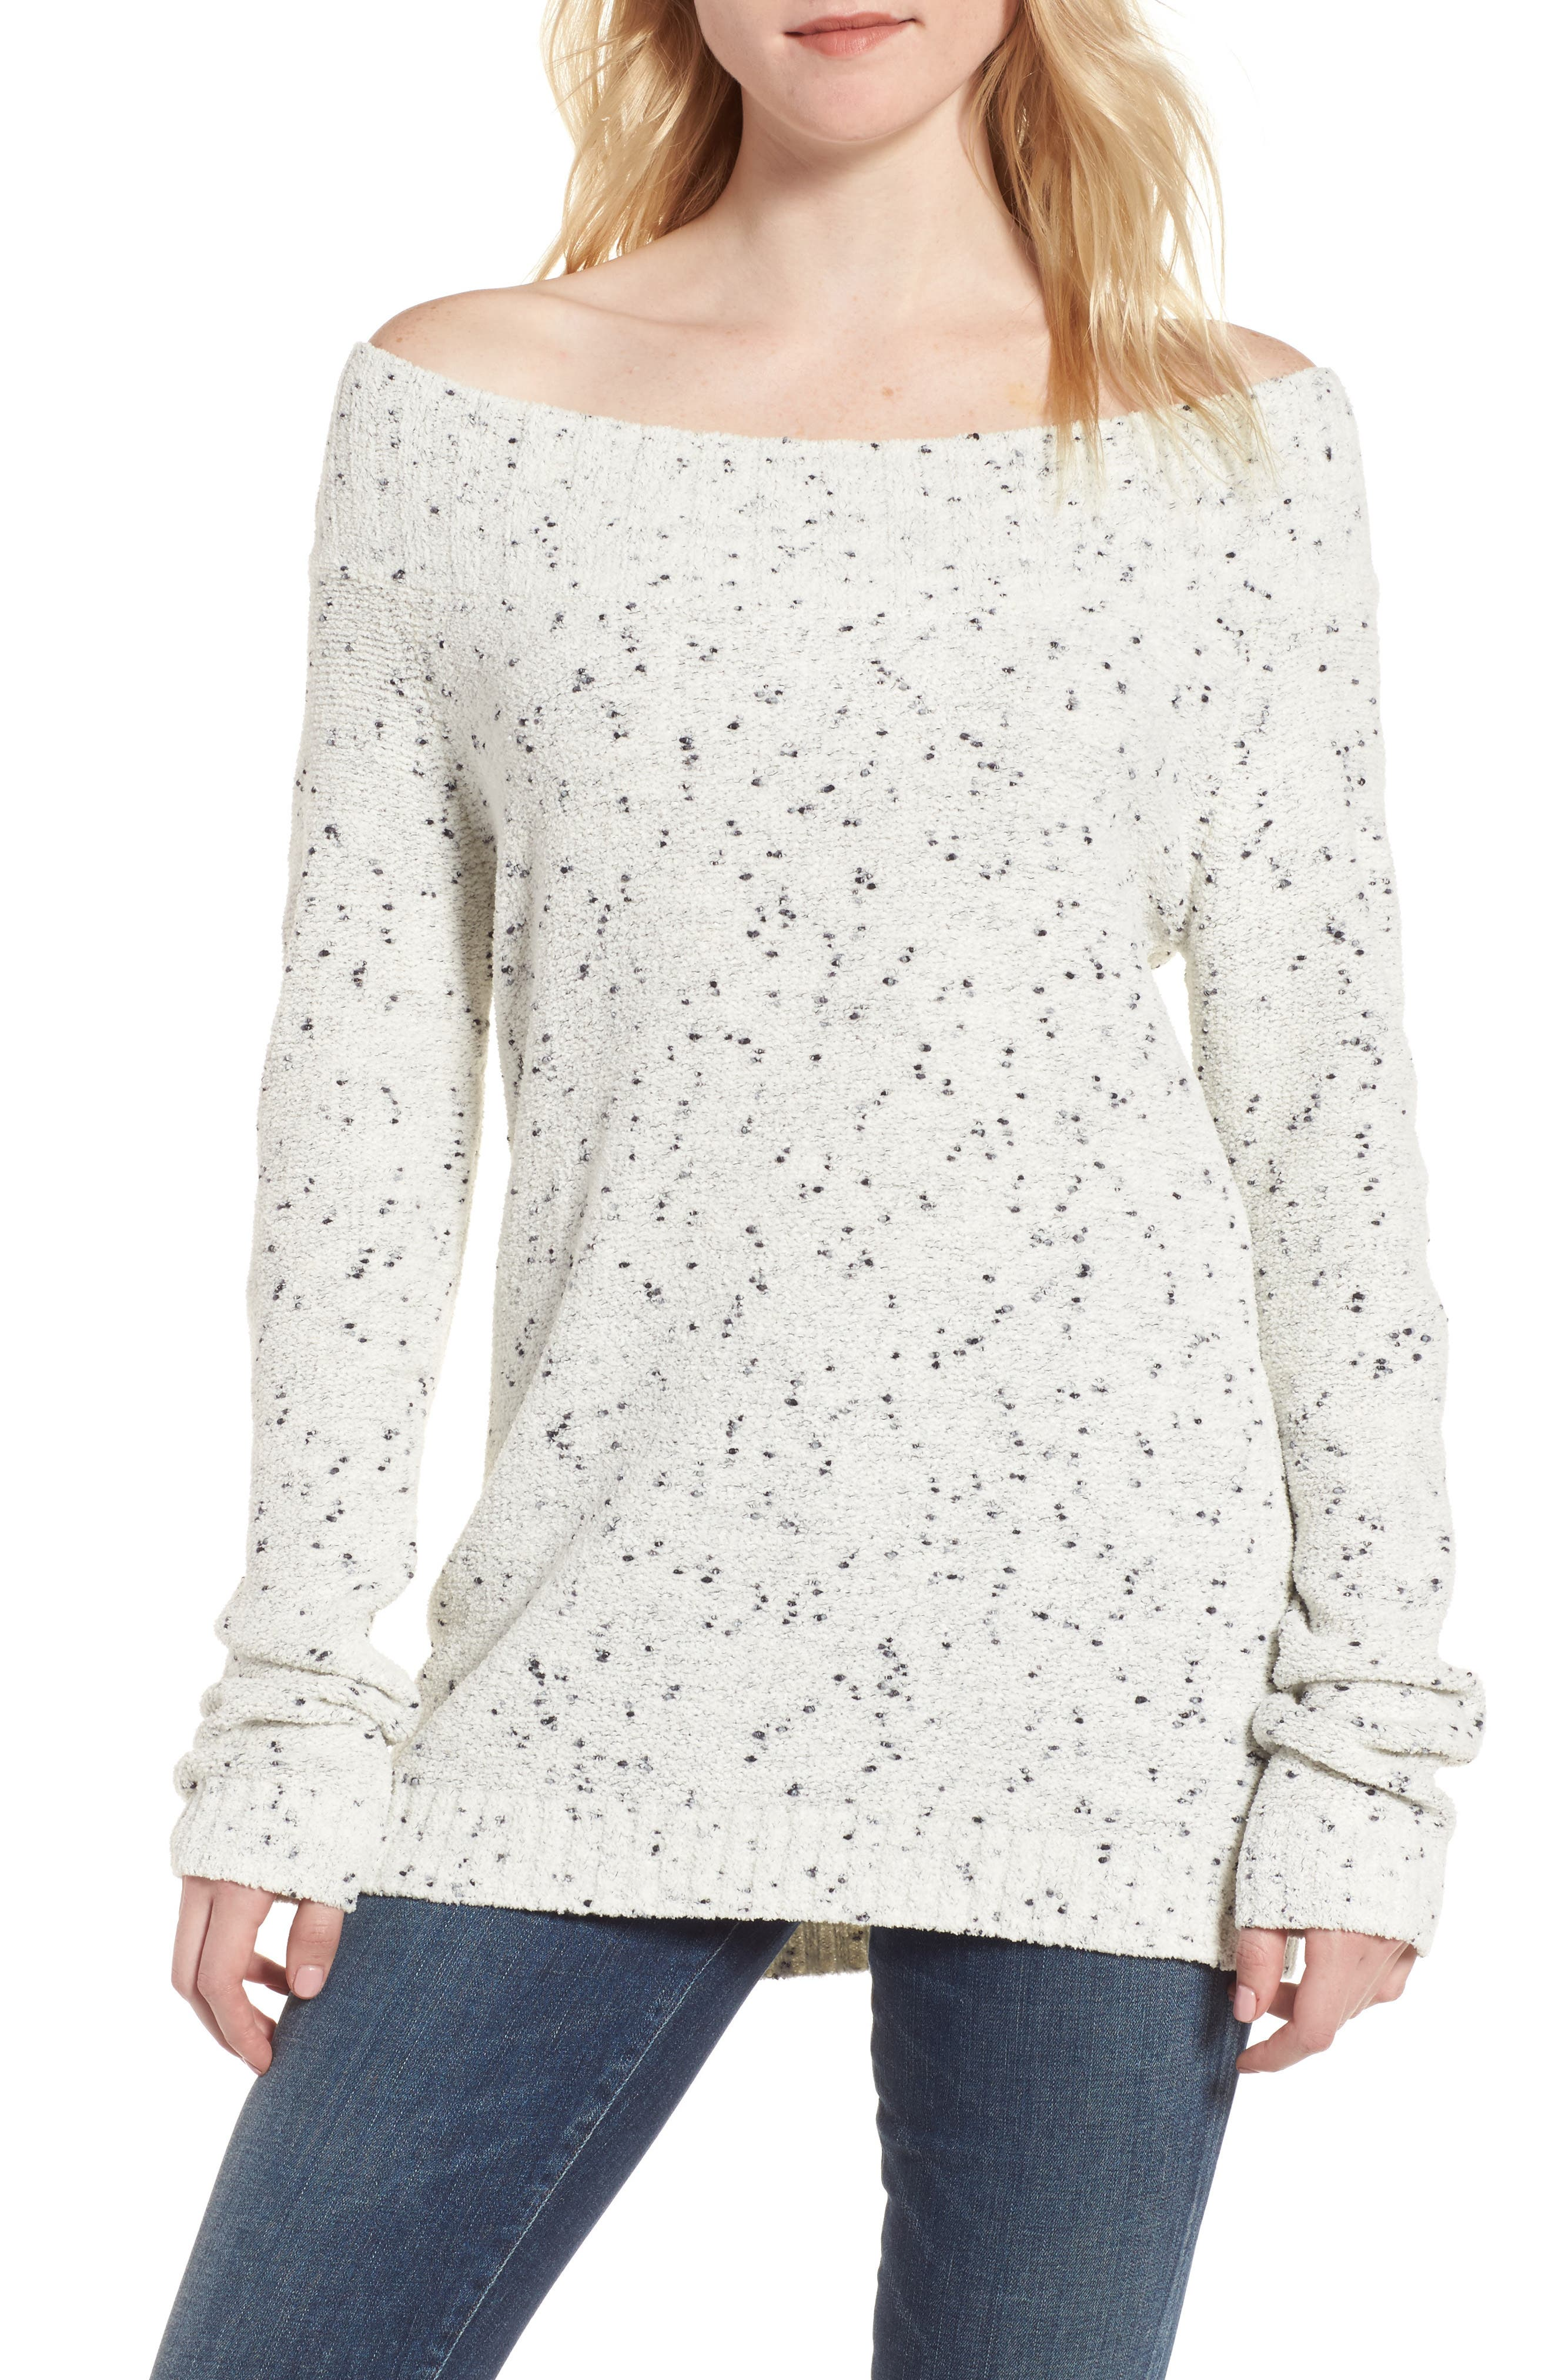 Hinge 'Marilyn' Sweater